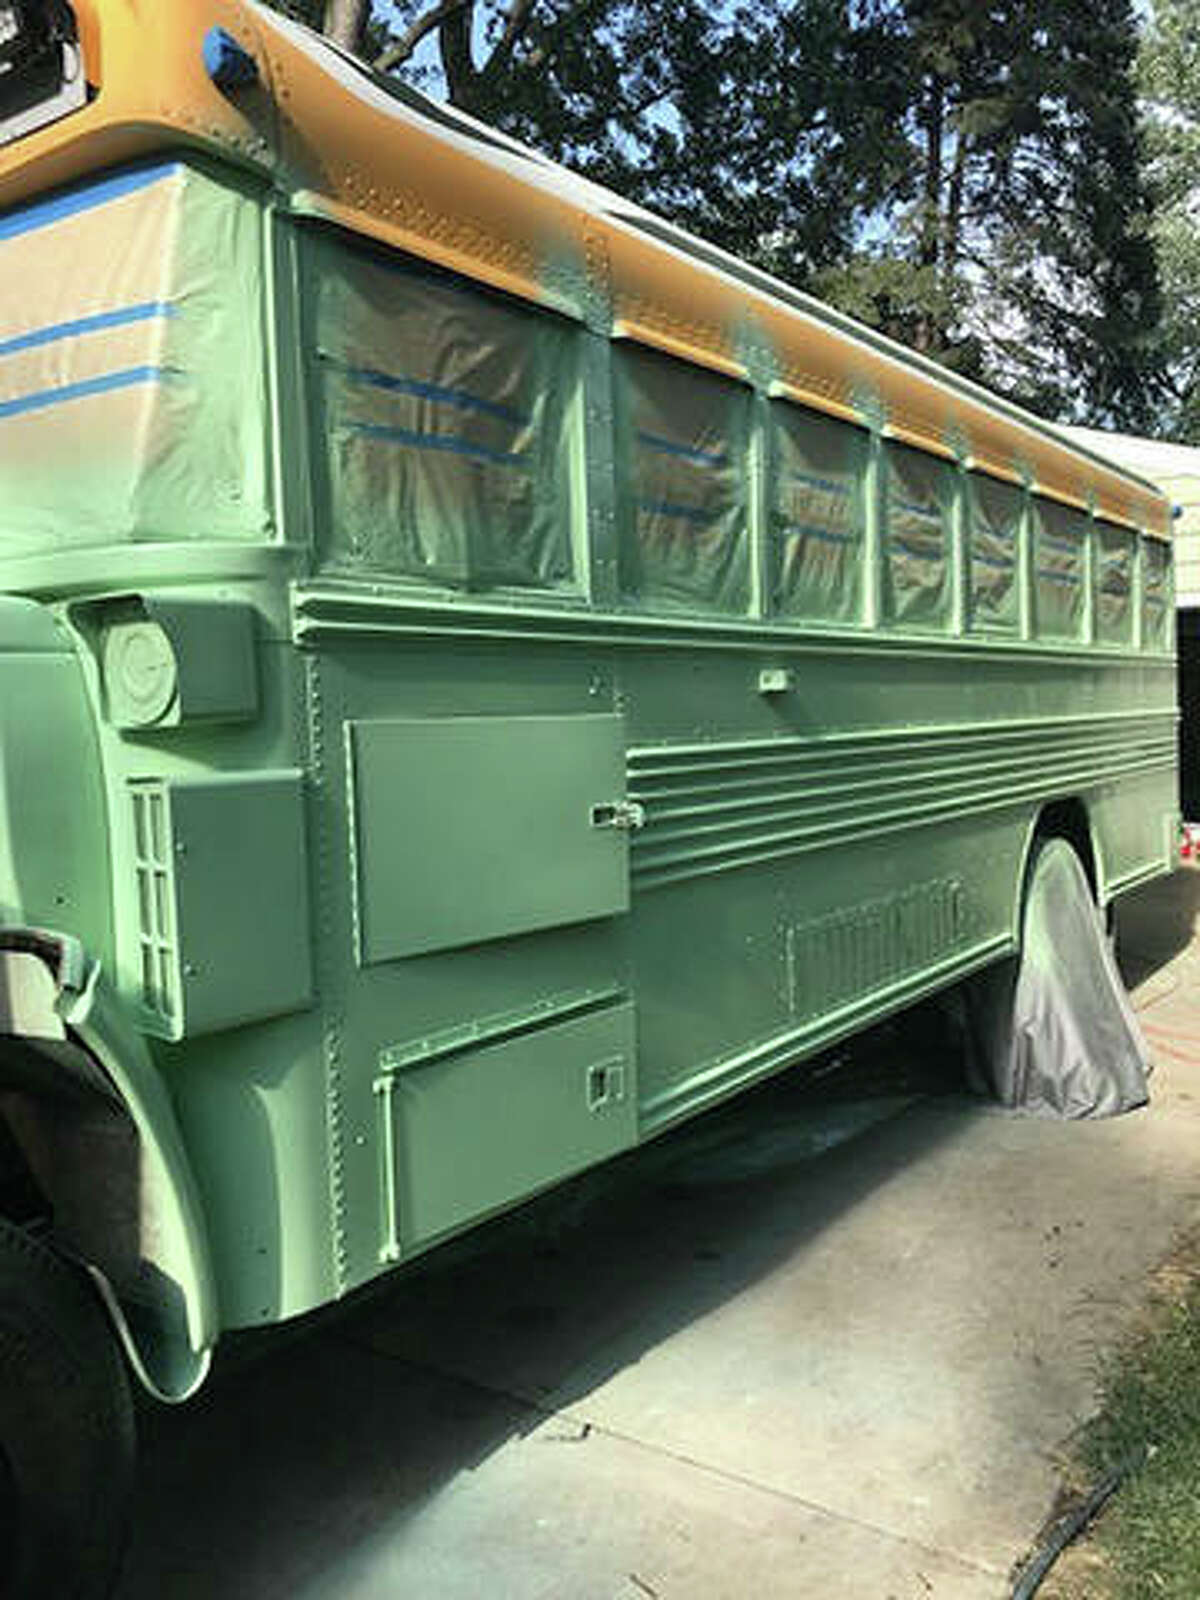 """A photo of the """"Skoolie,"""" a refitted school bus built by Lana and Mark Maue of Edwardsville, as it was being painted green."""